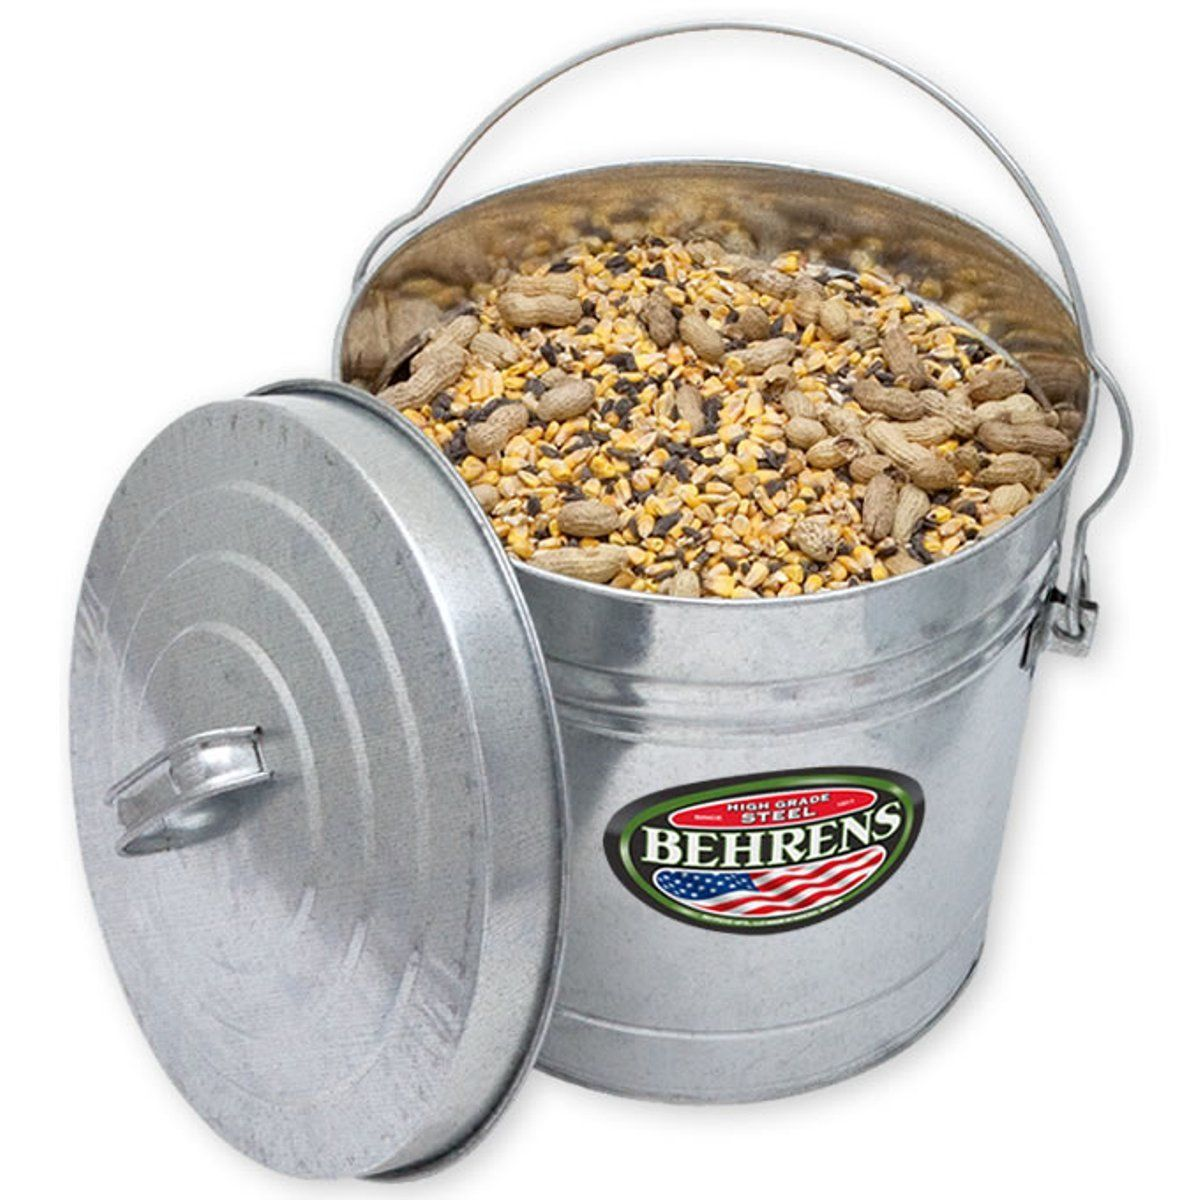 Behrens 6106 6gallon locking lid can dog food container